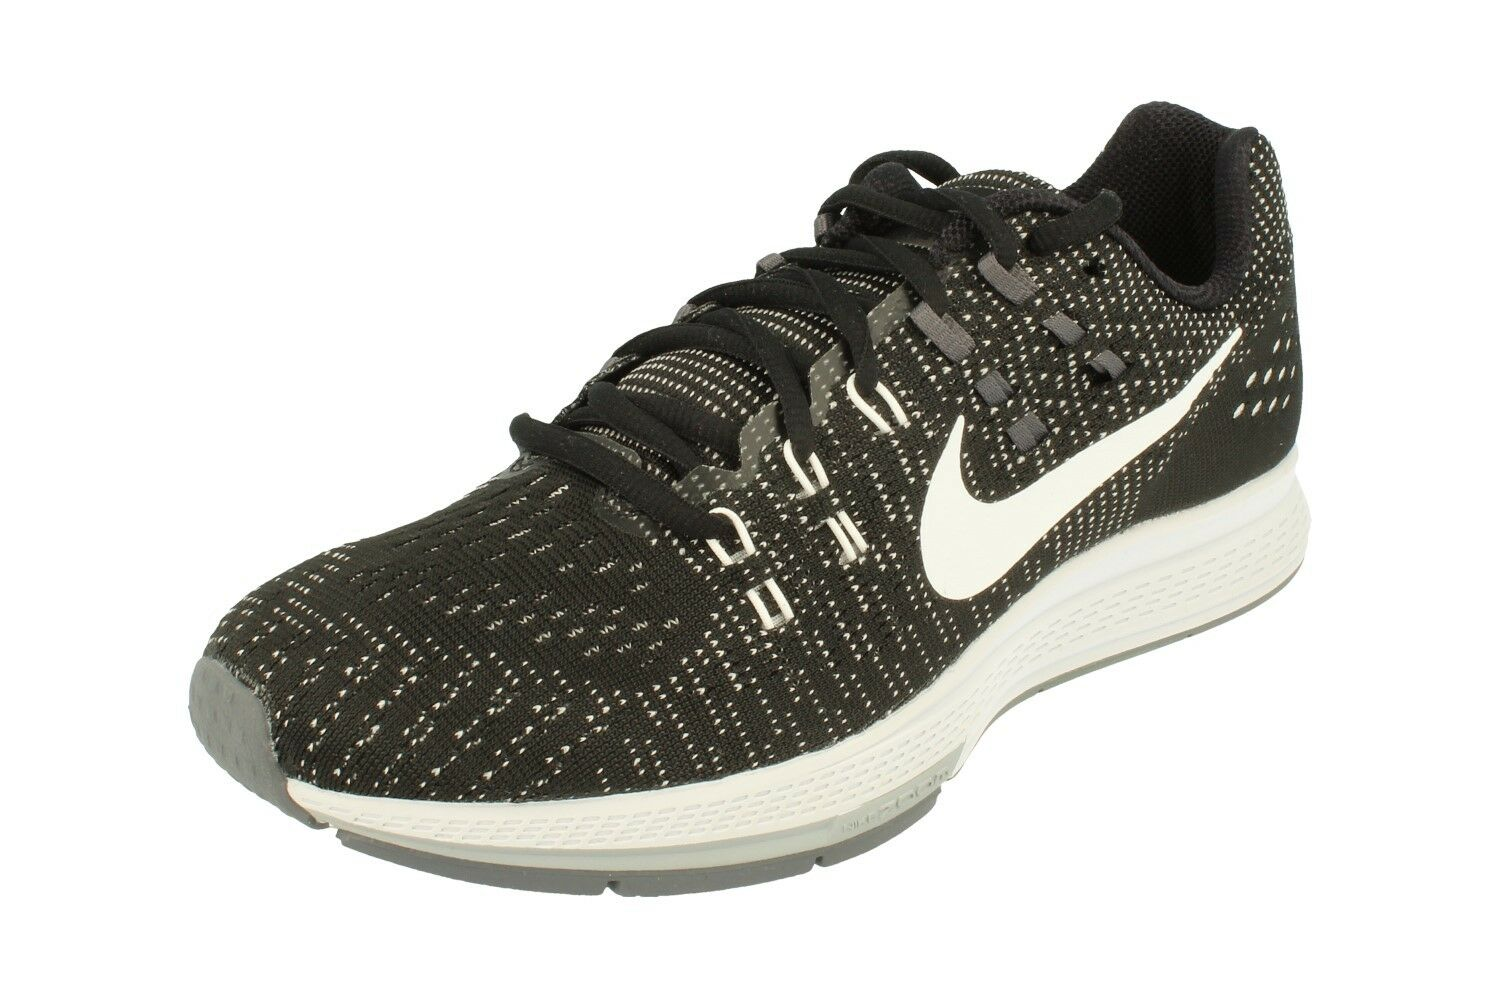 Nike Trainers Air Zoom Structure 19 Mens Running Trainers Nike 806580 Sneakers Shoes 001 188907